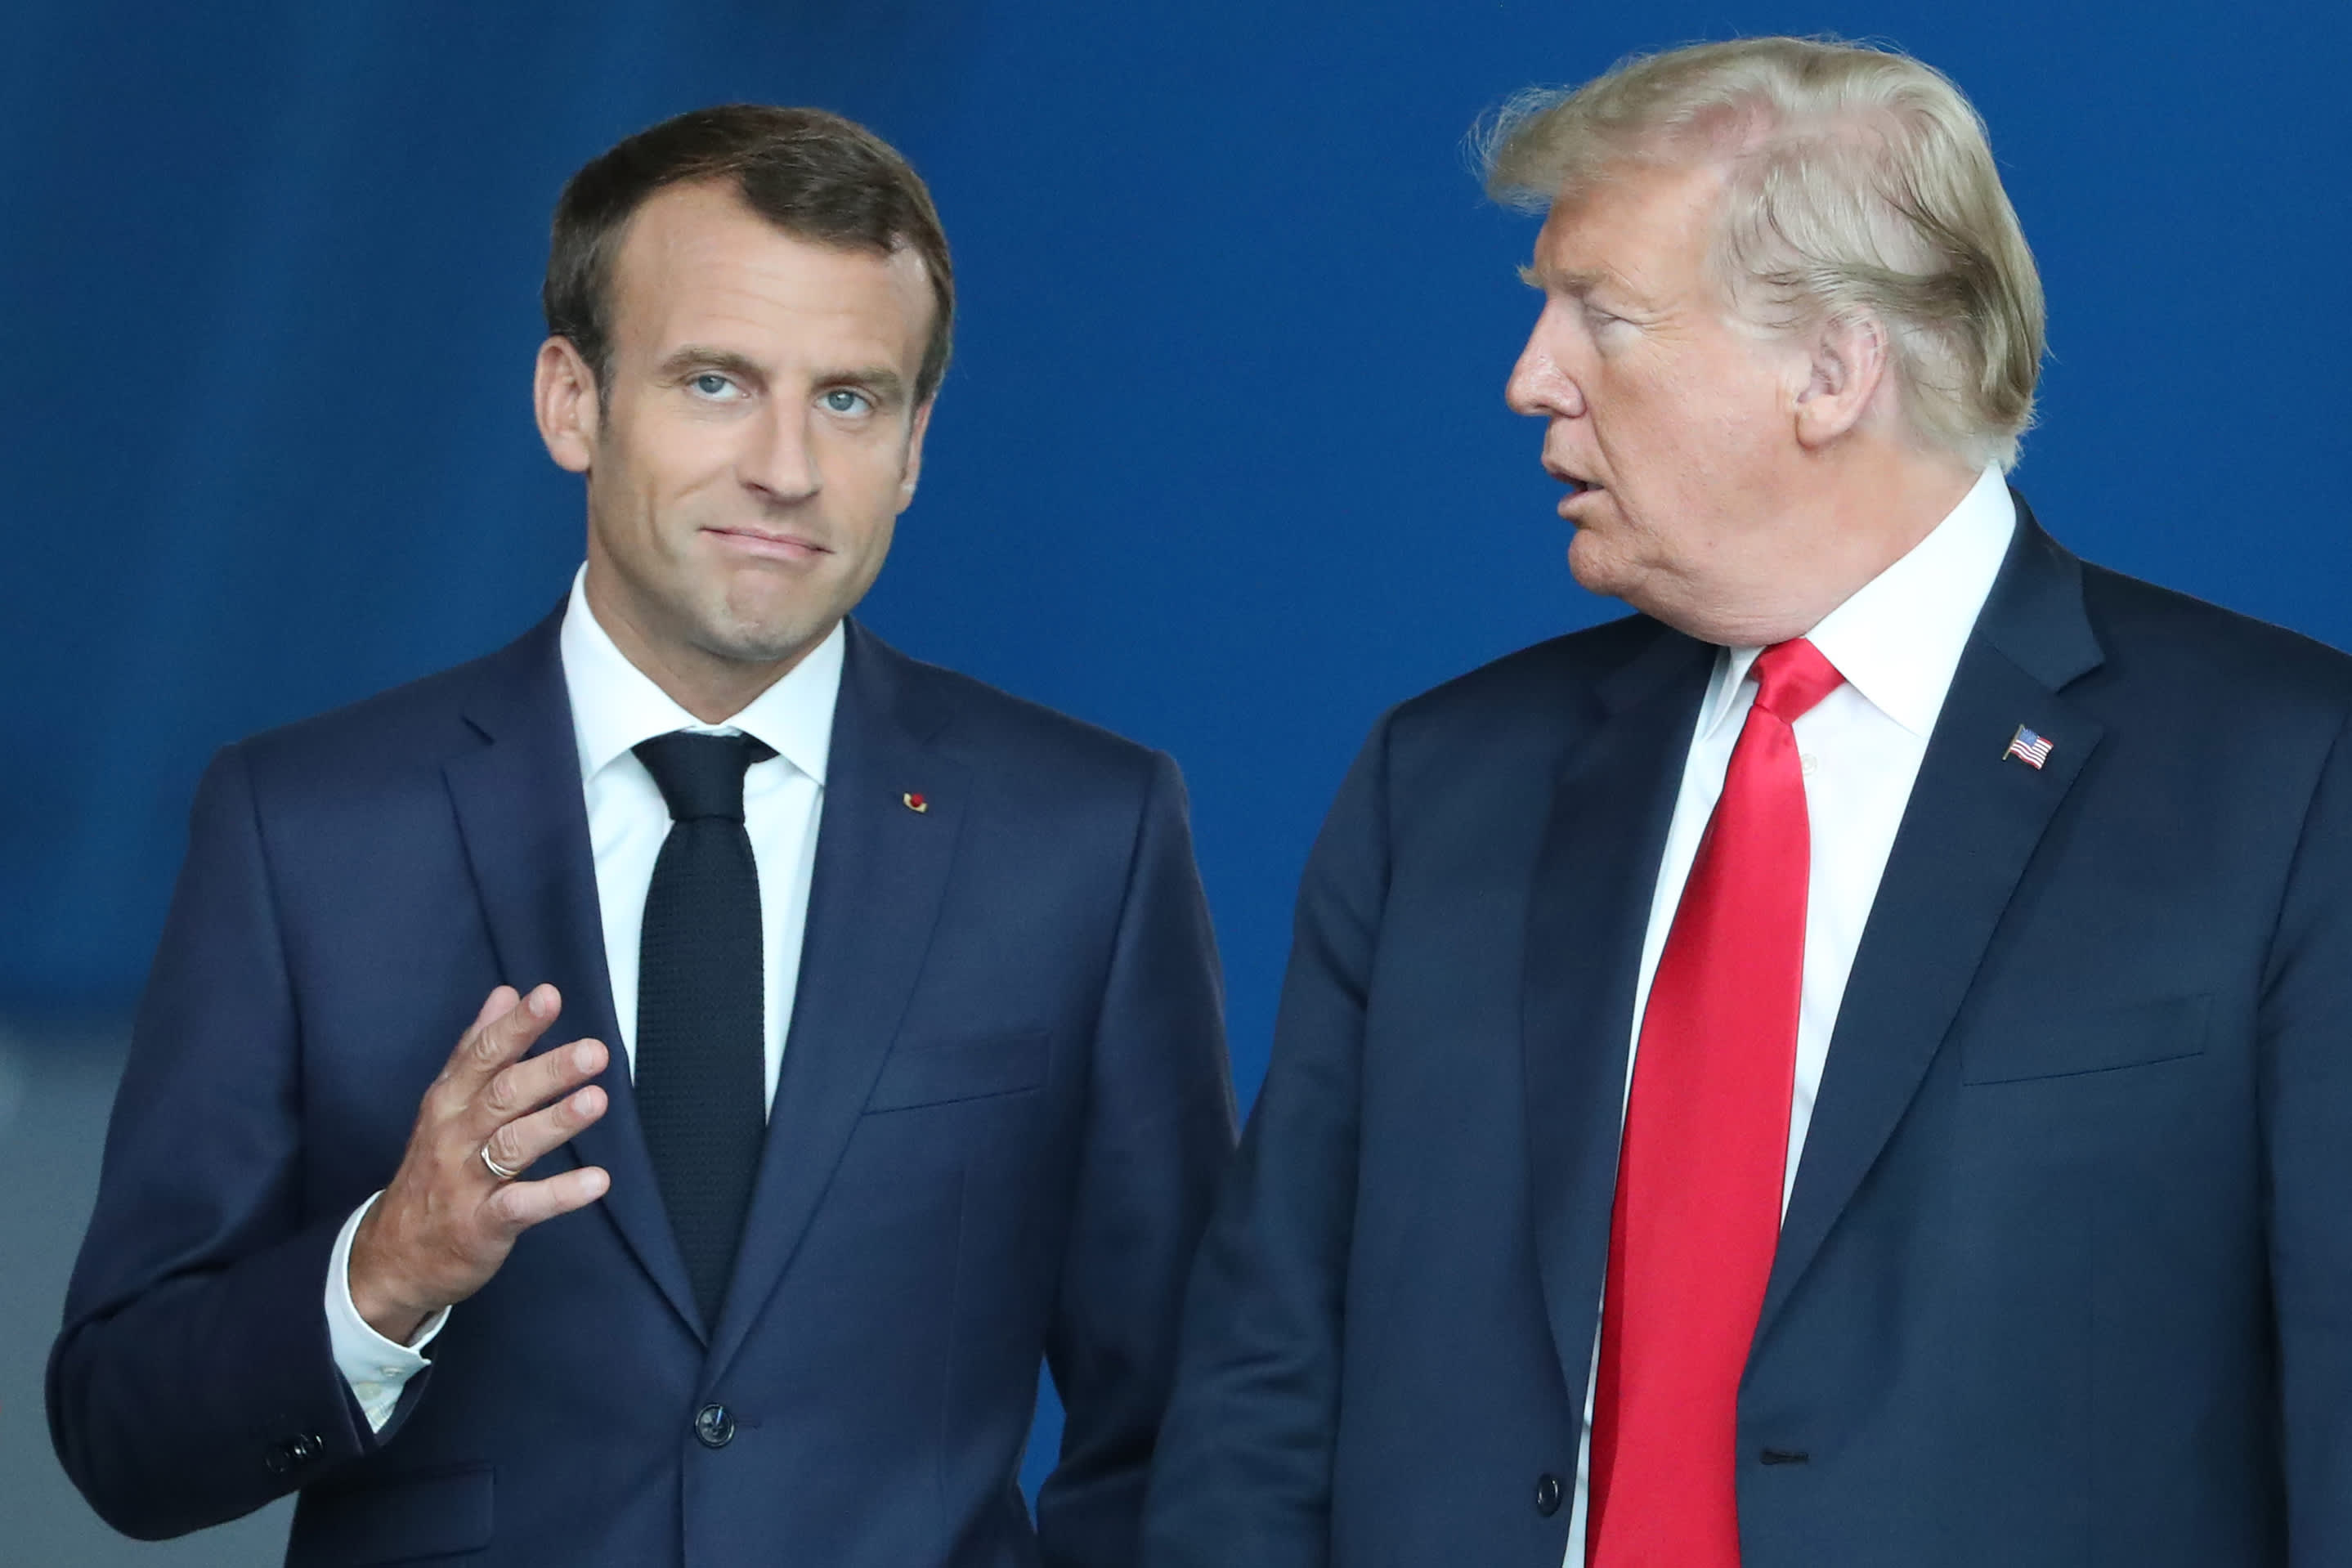 Trump slams Macron for 'insulting' and 'disrespectful' NATO comments